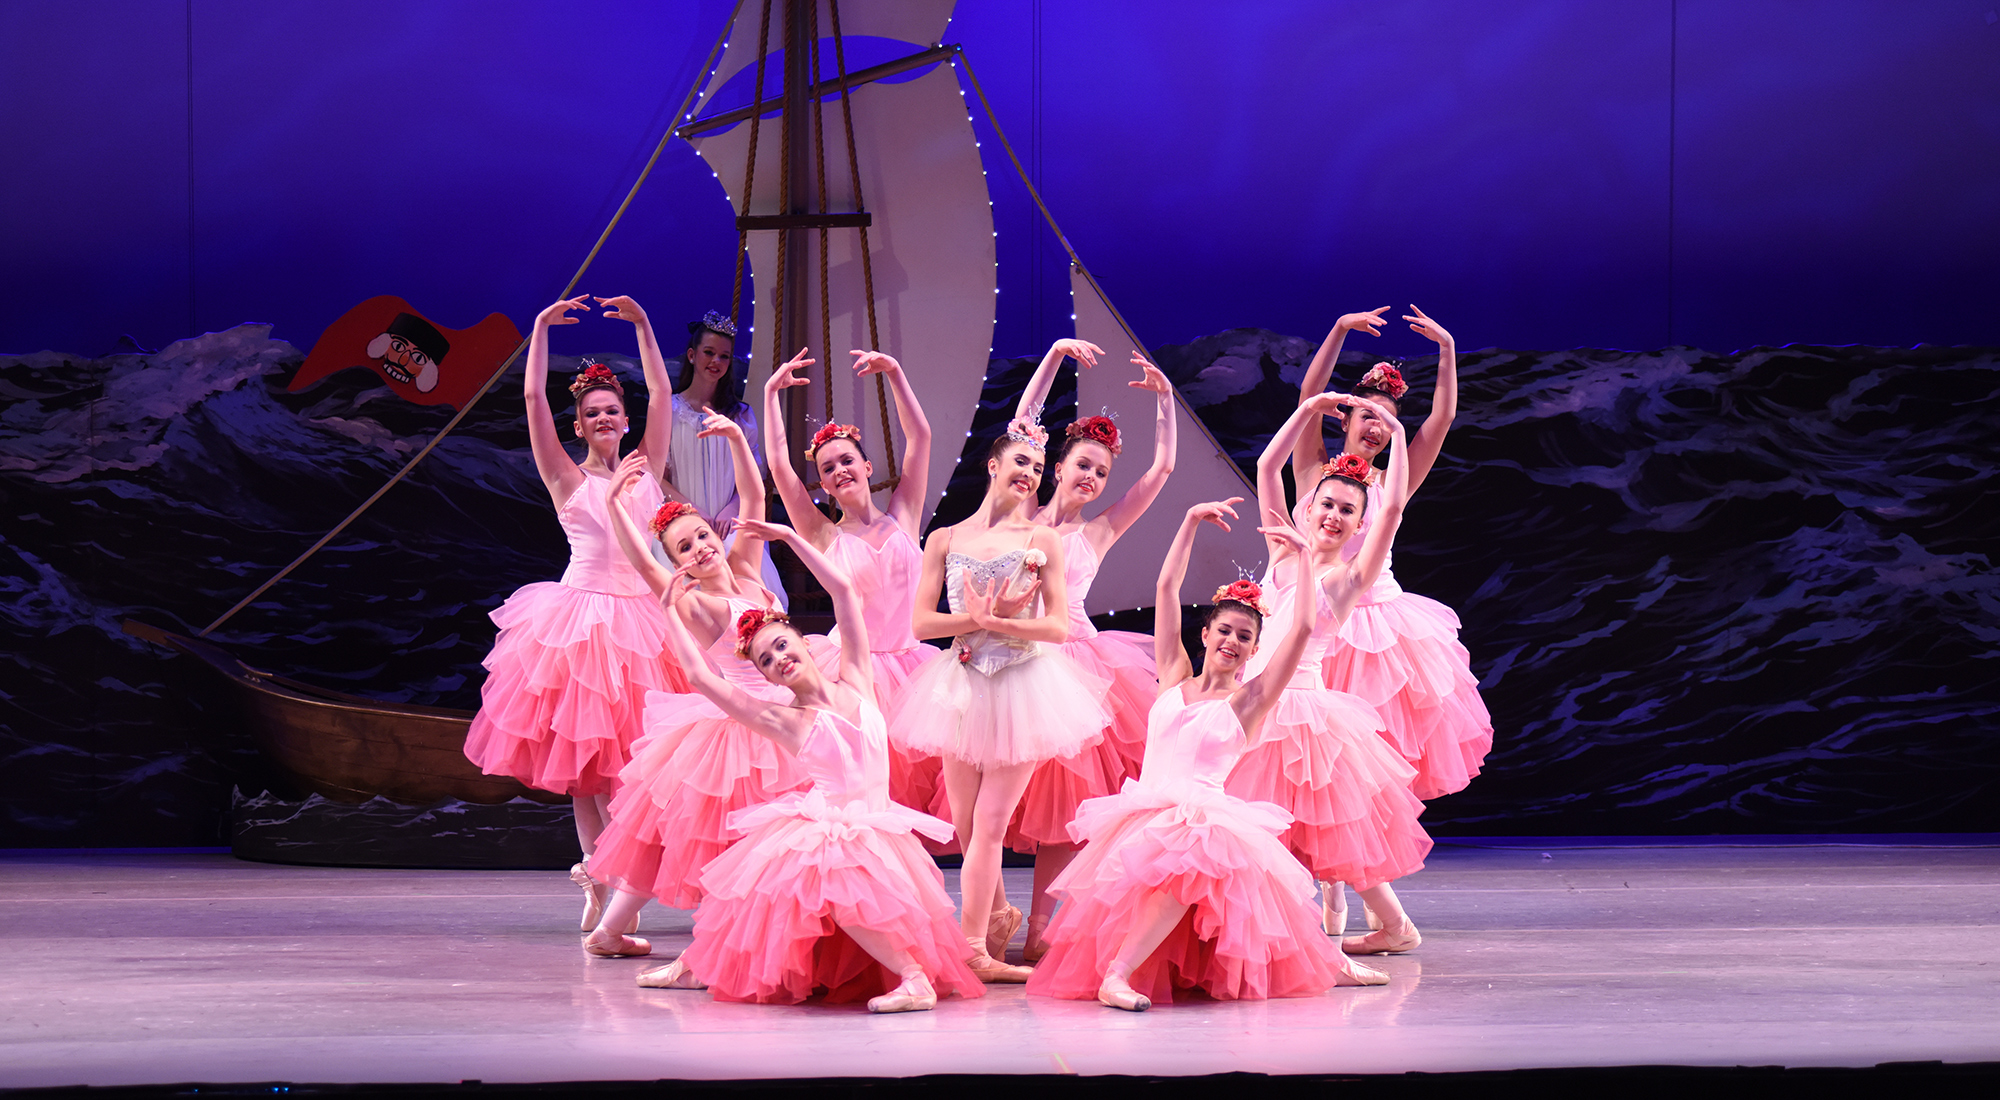 Eastern CT Ballet performs the Nutcracker